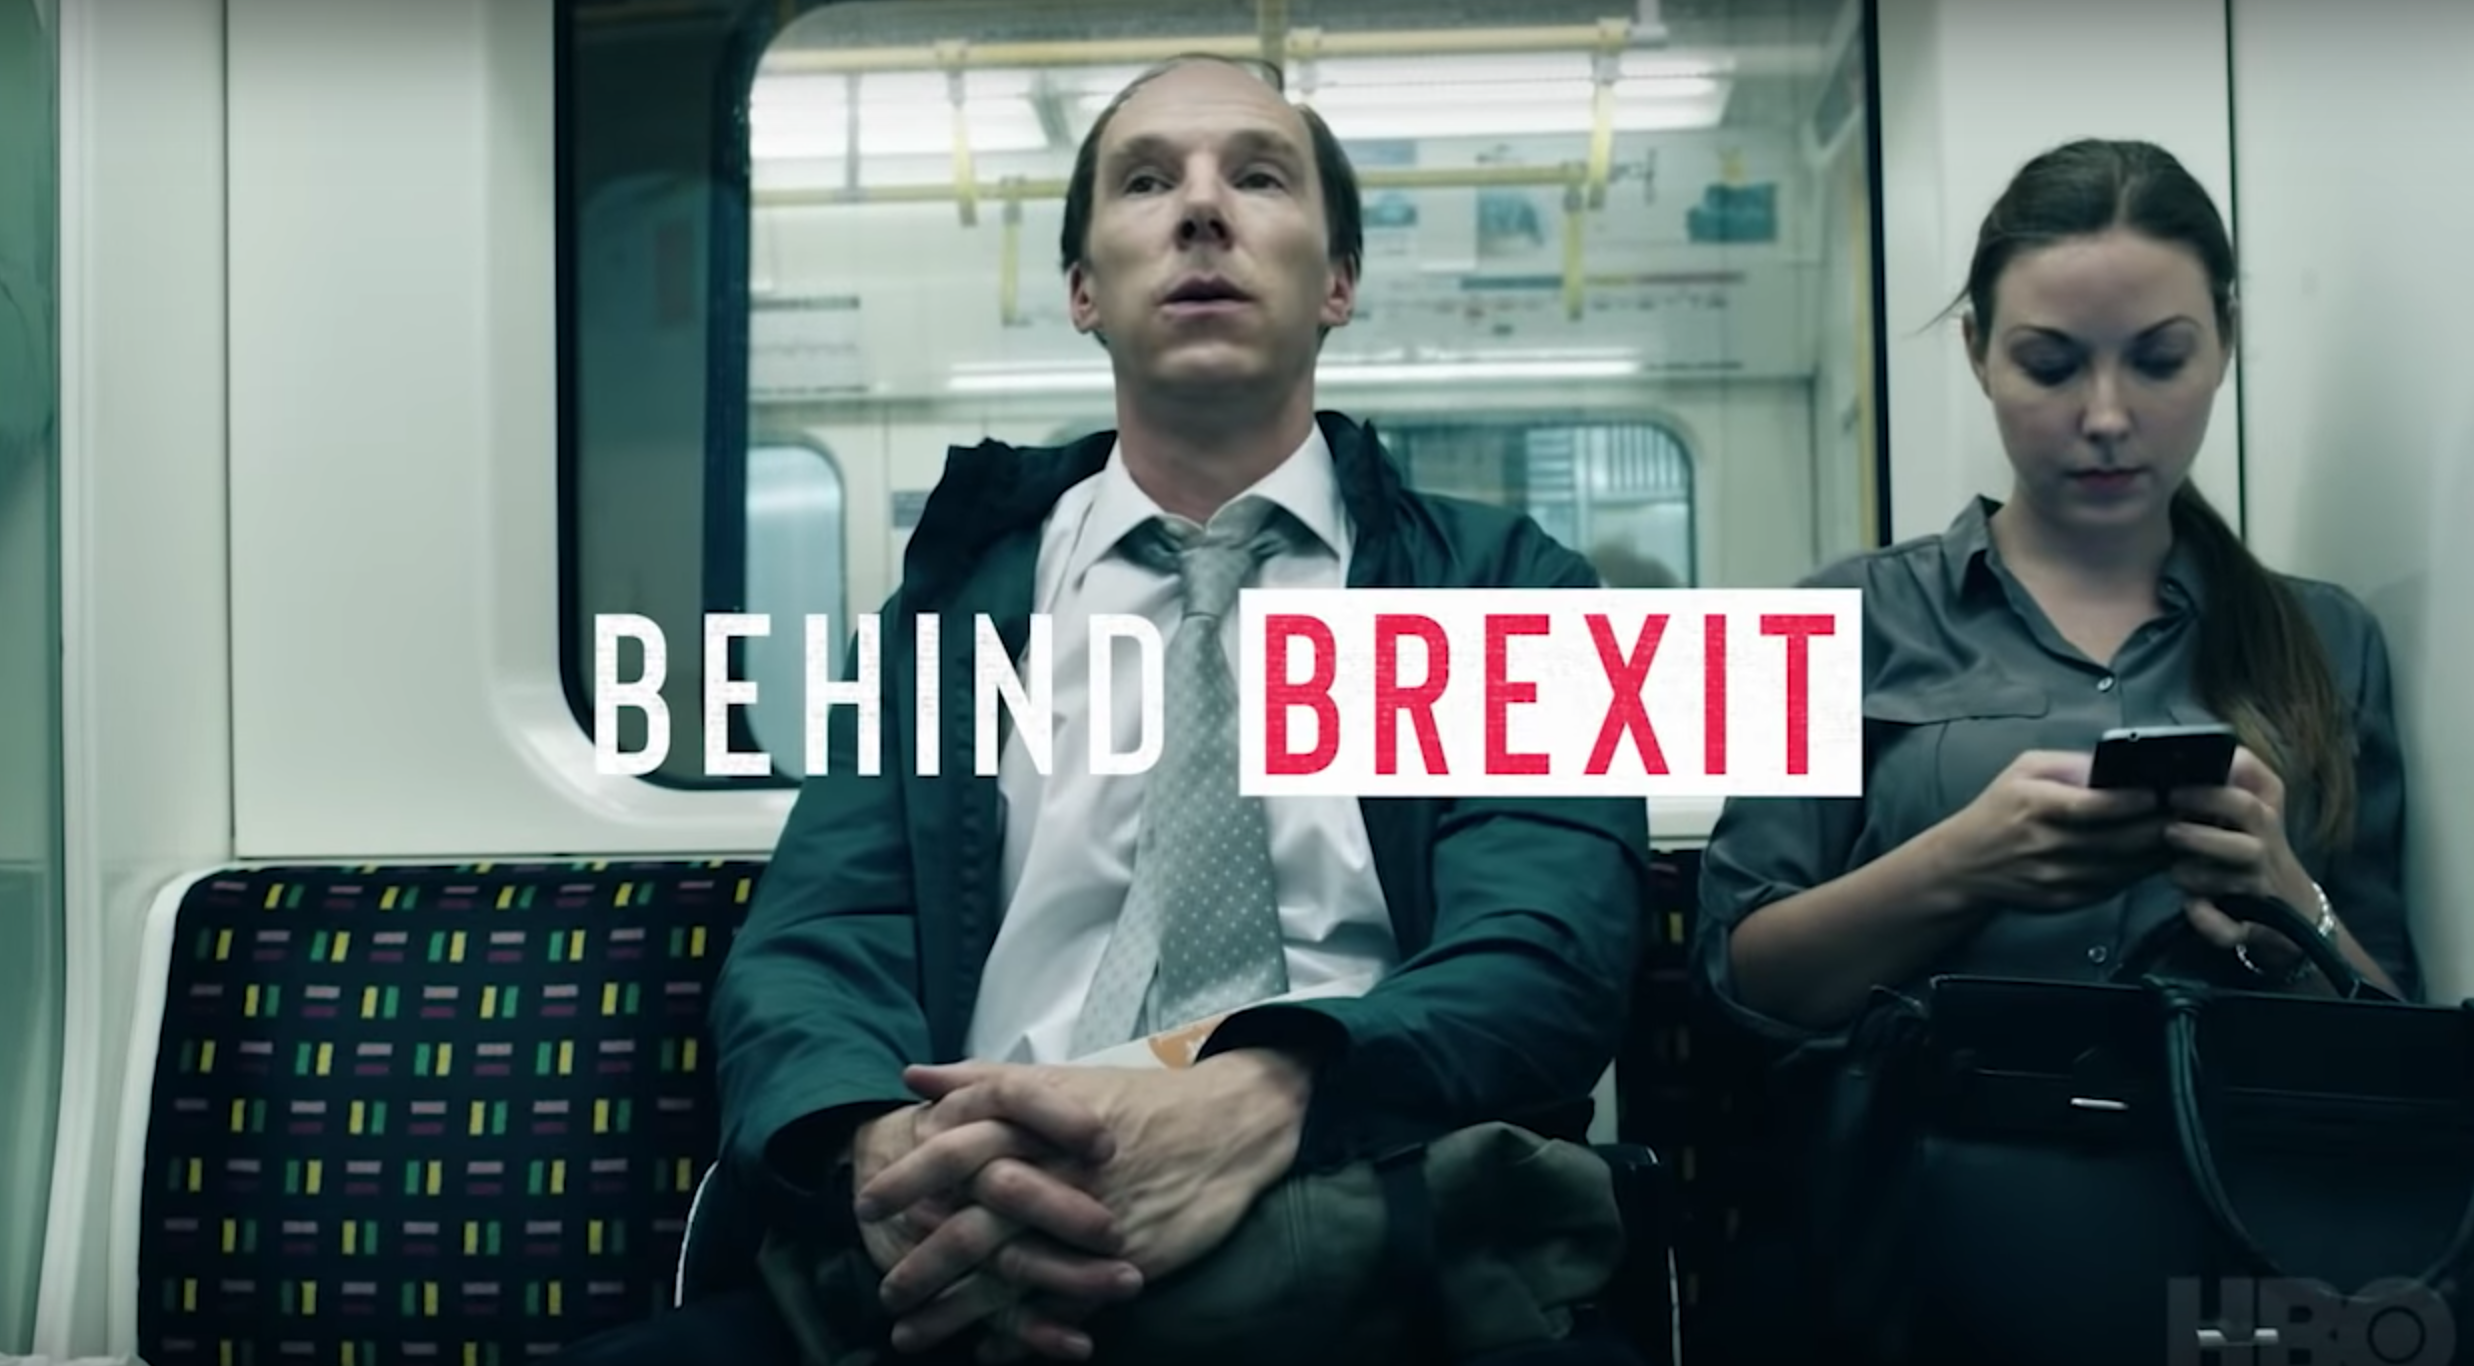 Benedict Cumberbatch will star in an HBO movie about Brexit. Here's why the film is controversial.